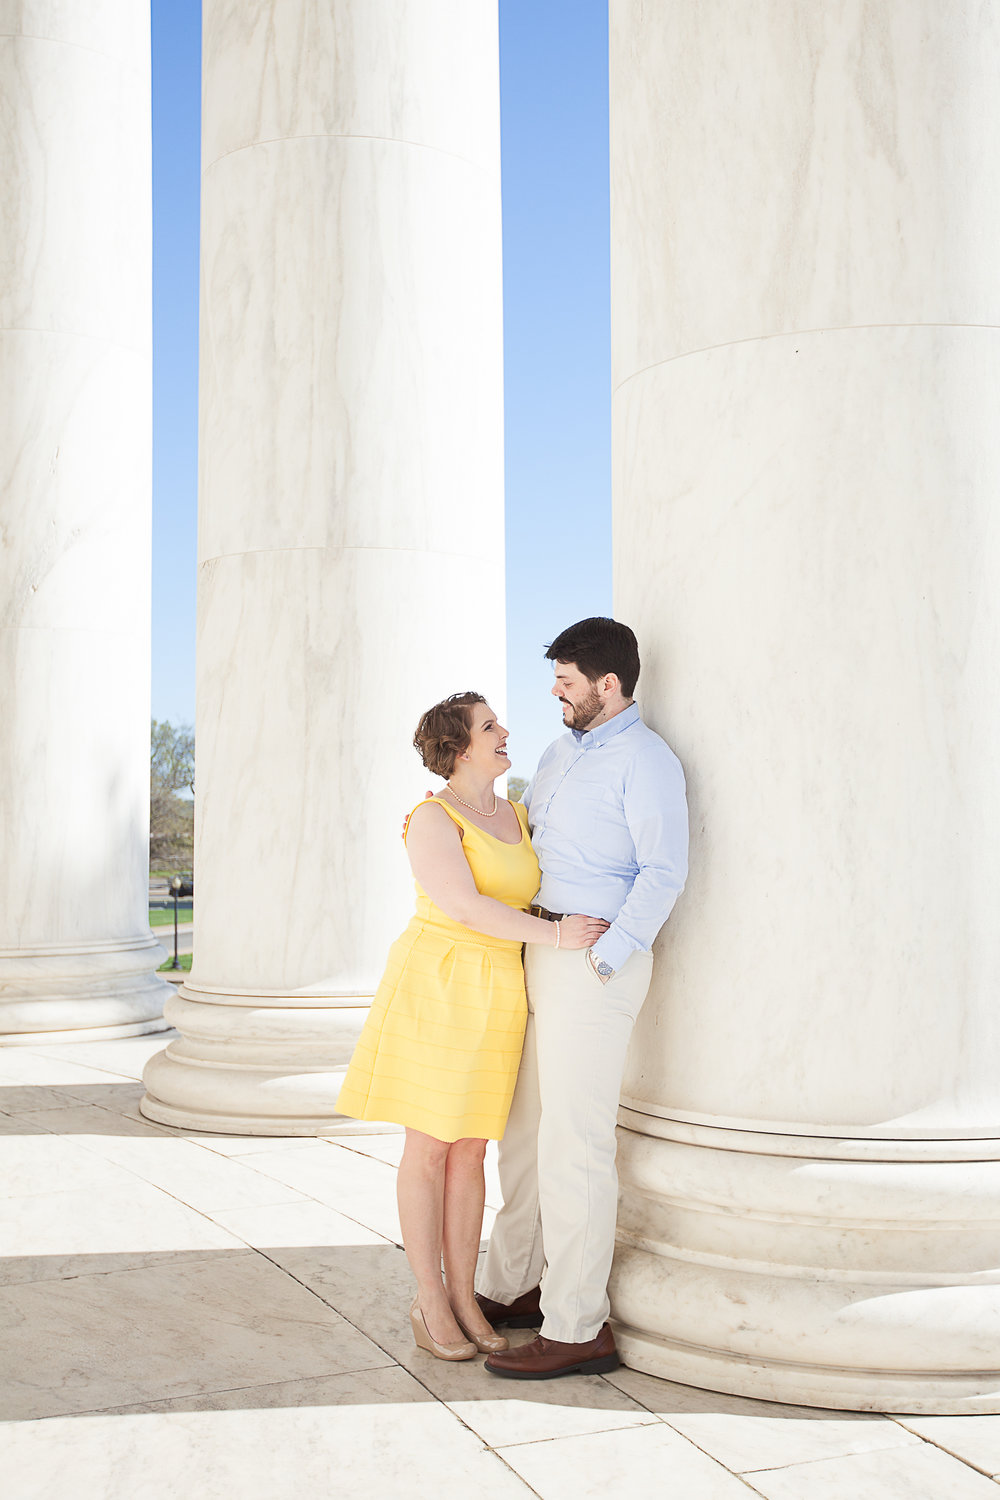 Kathryn-Stephen-Engagement-Kim-Pham-Clark-Photography-03.jpg